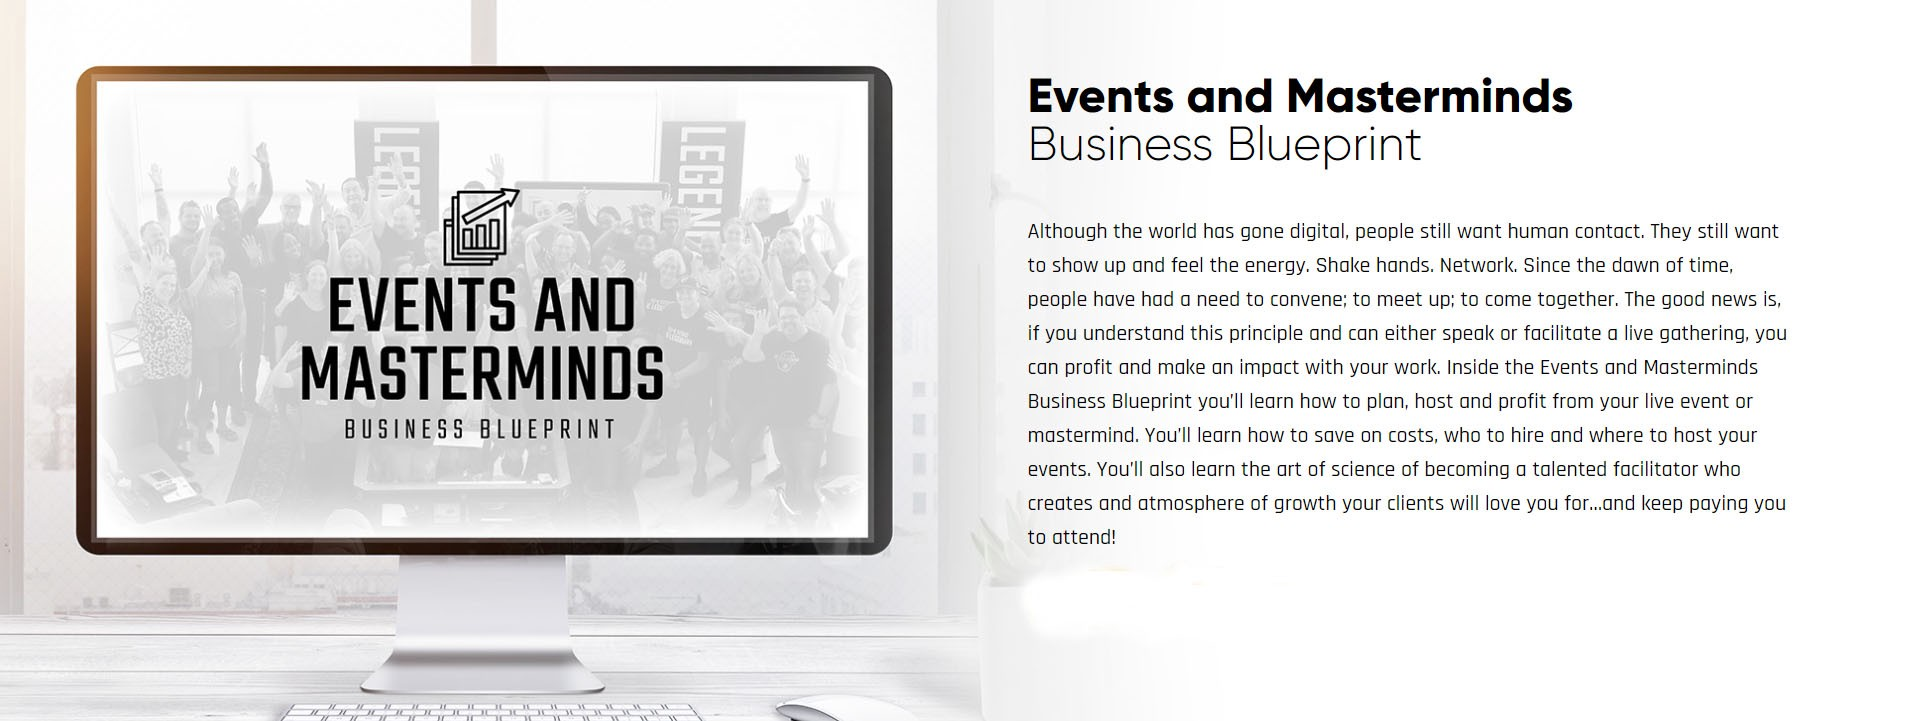 Events and Masterminds Business Blueprint Print-screen